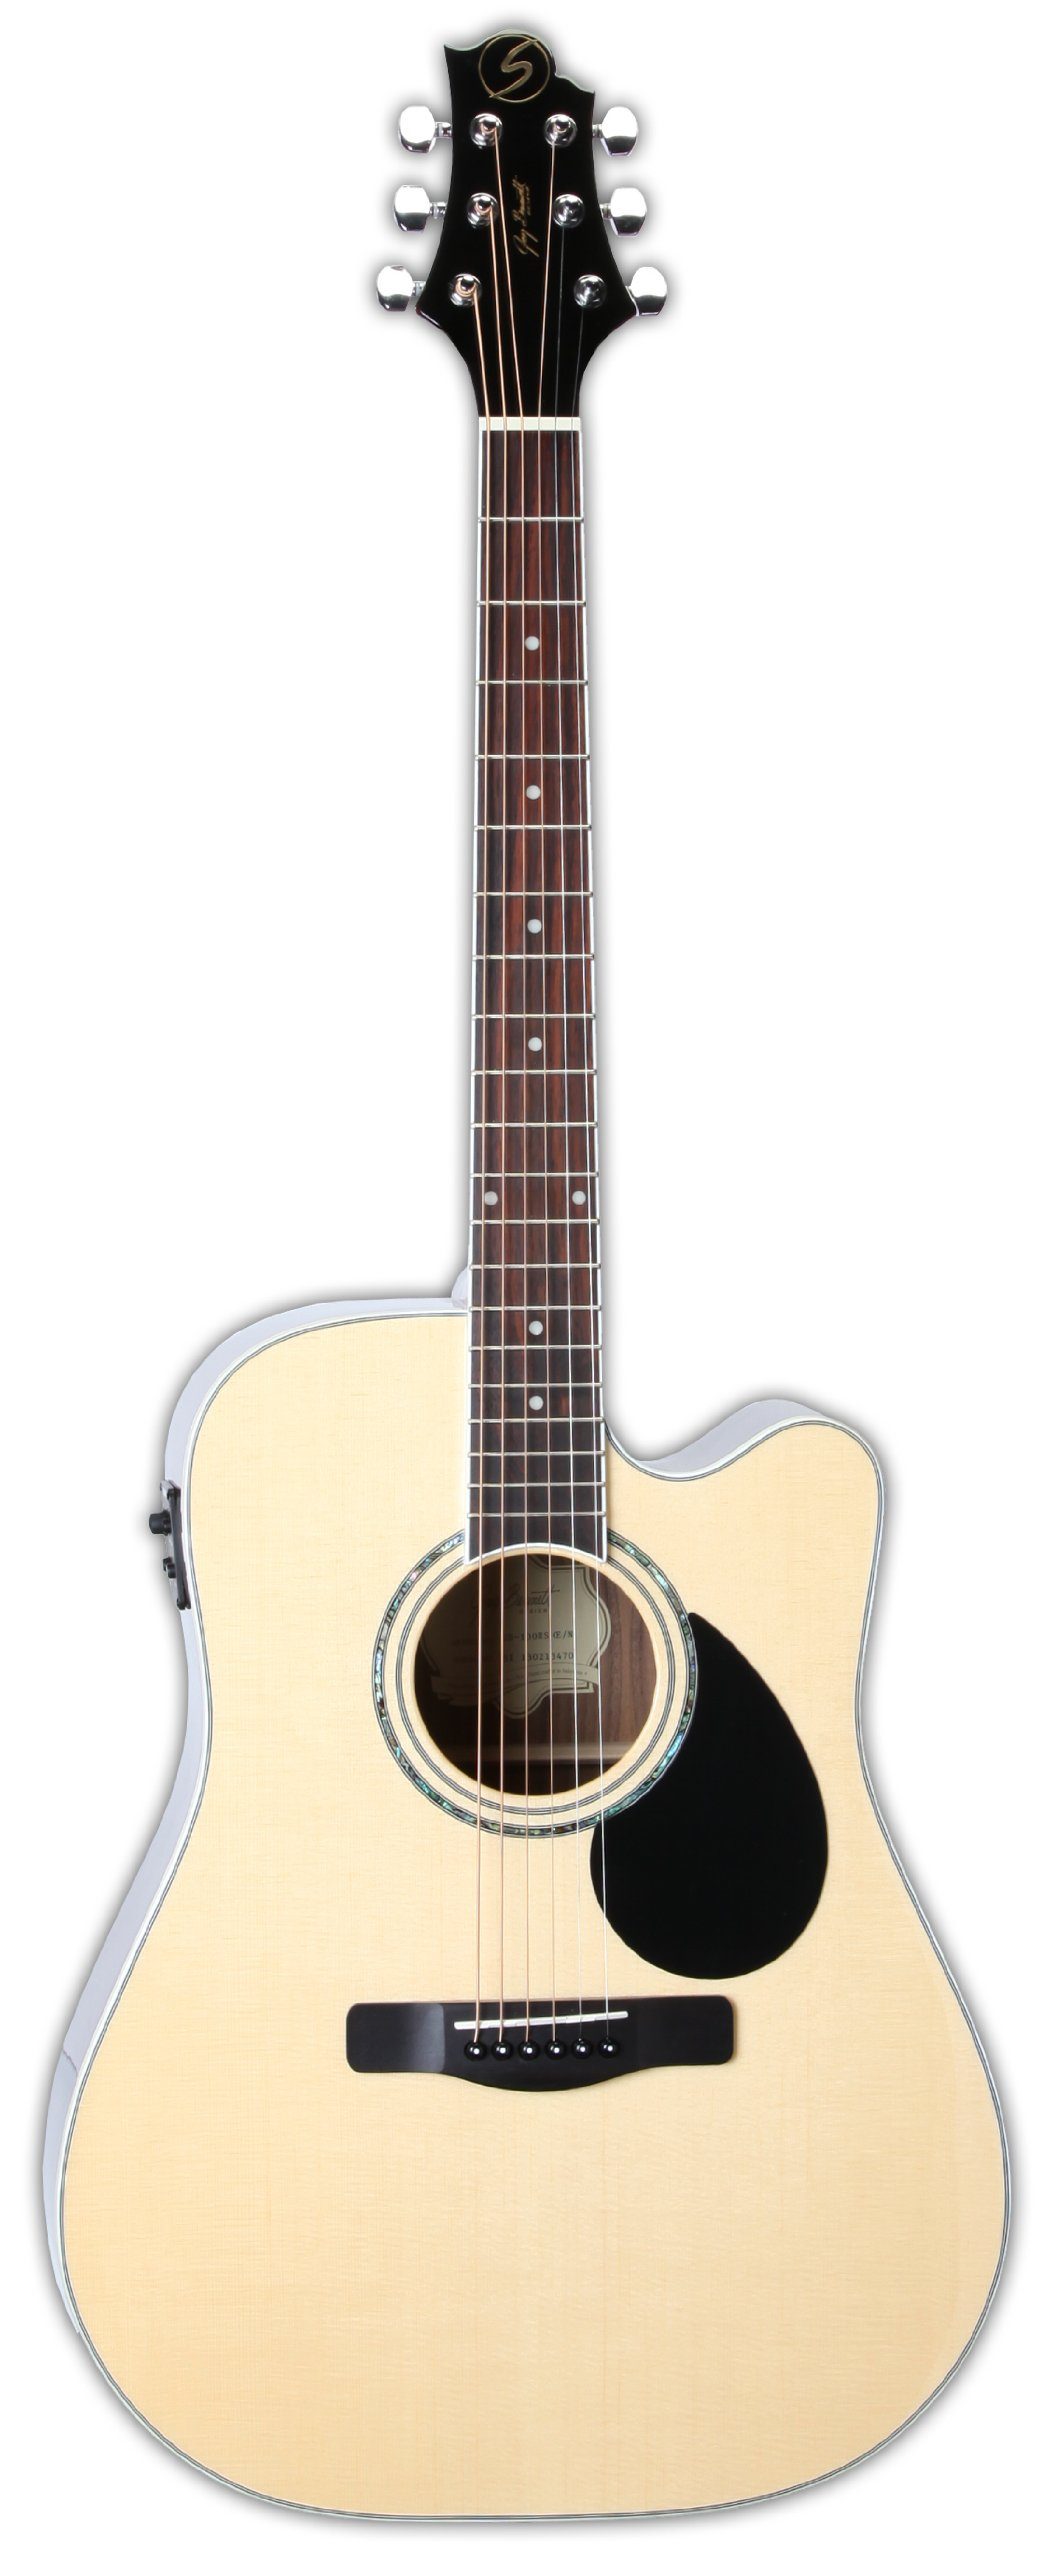 Samick Music G Series 100 GD100RSCE Dreadnought Acoustic-Electric Guitar, Natural by Samick